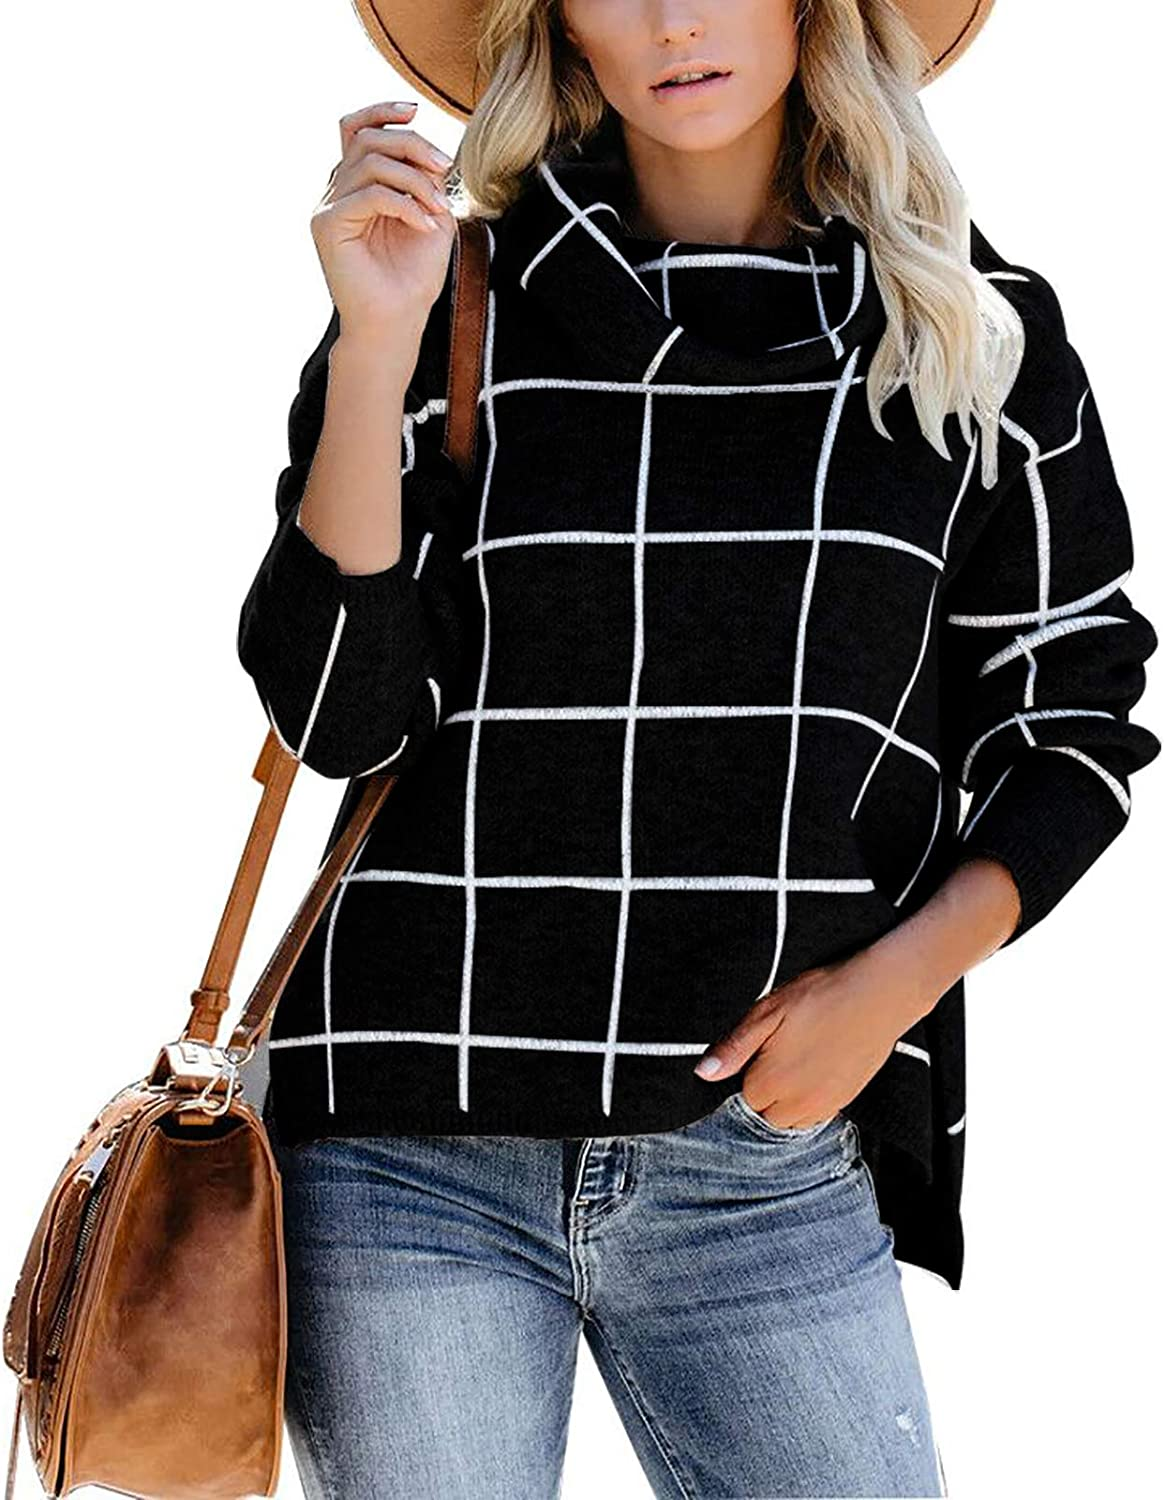 Manufacturer direct delivery Womens Turtleneck Max 79% OFF Long Sleeve Casual Pullover Kni Sweater Chunky